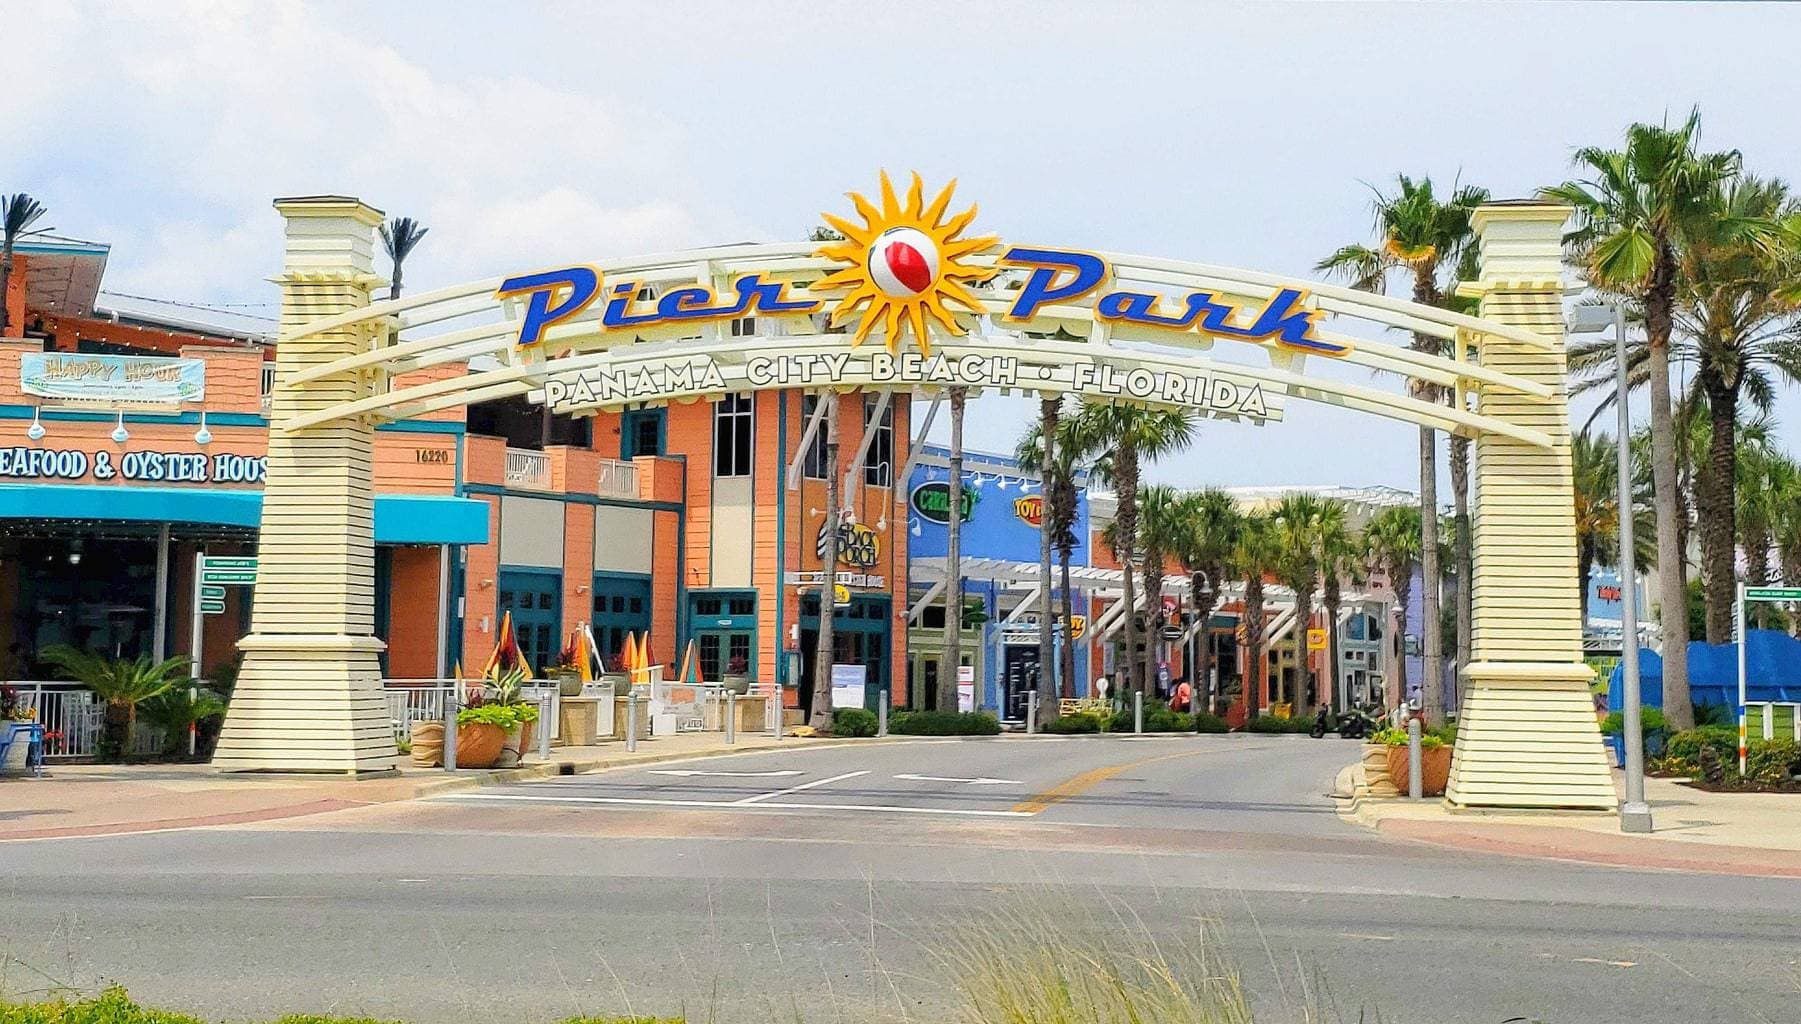 17 Things to do in Panama City Beach: Florida's Real Fun Beach